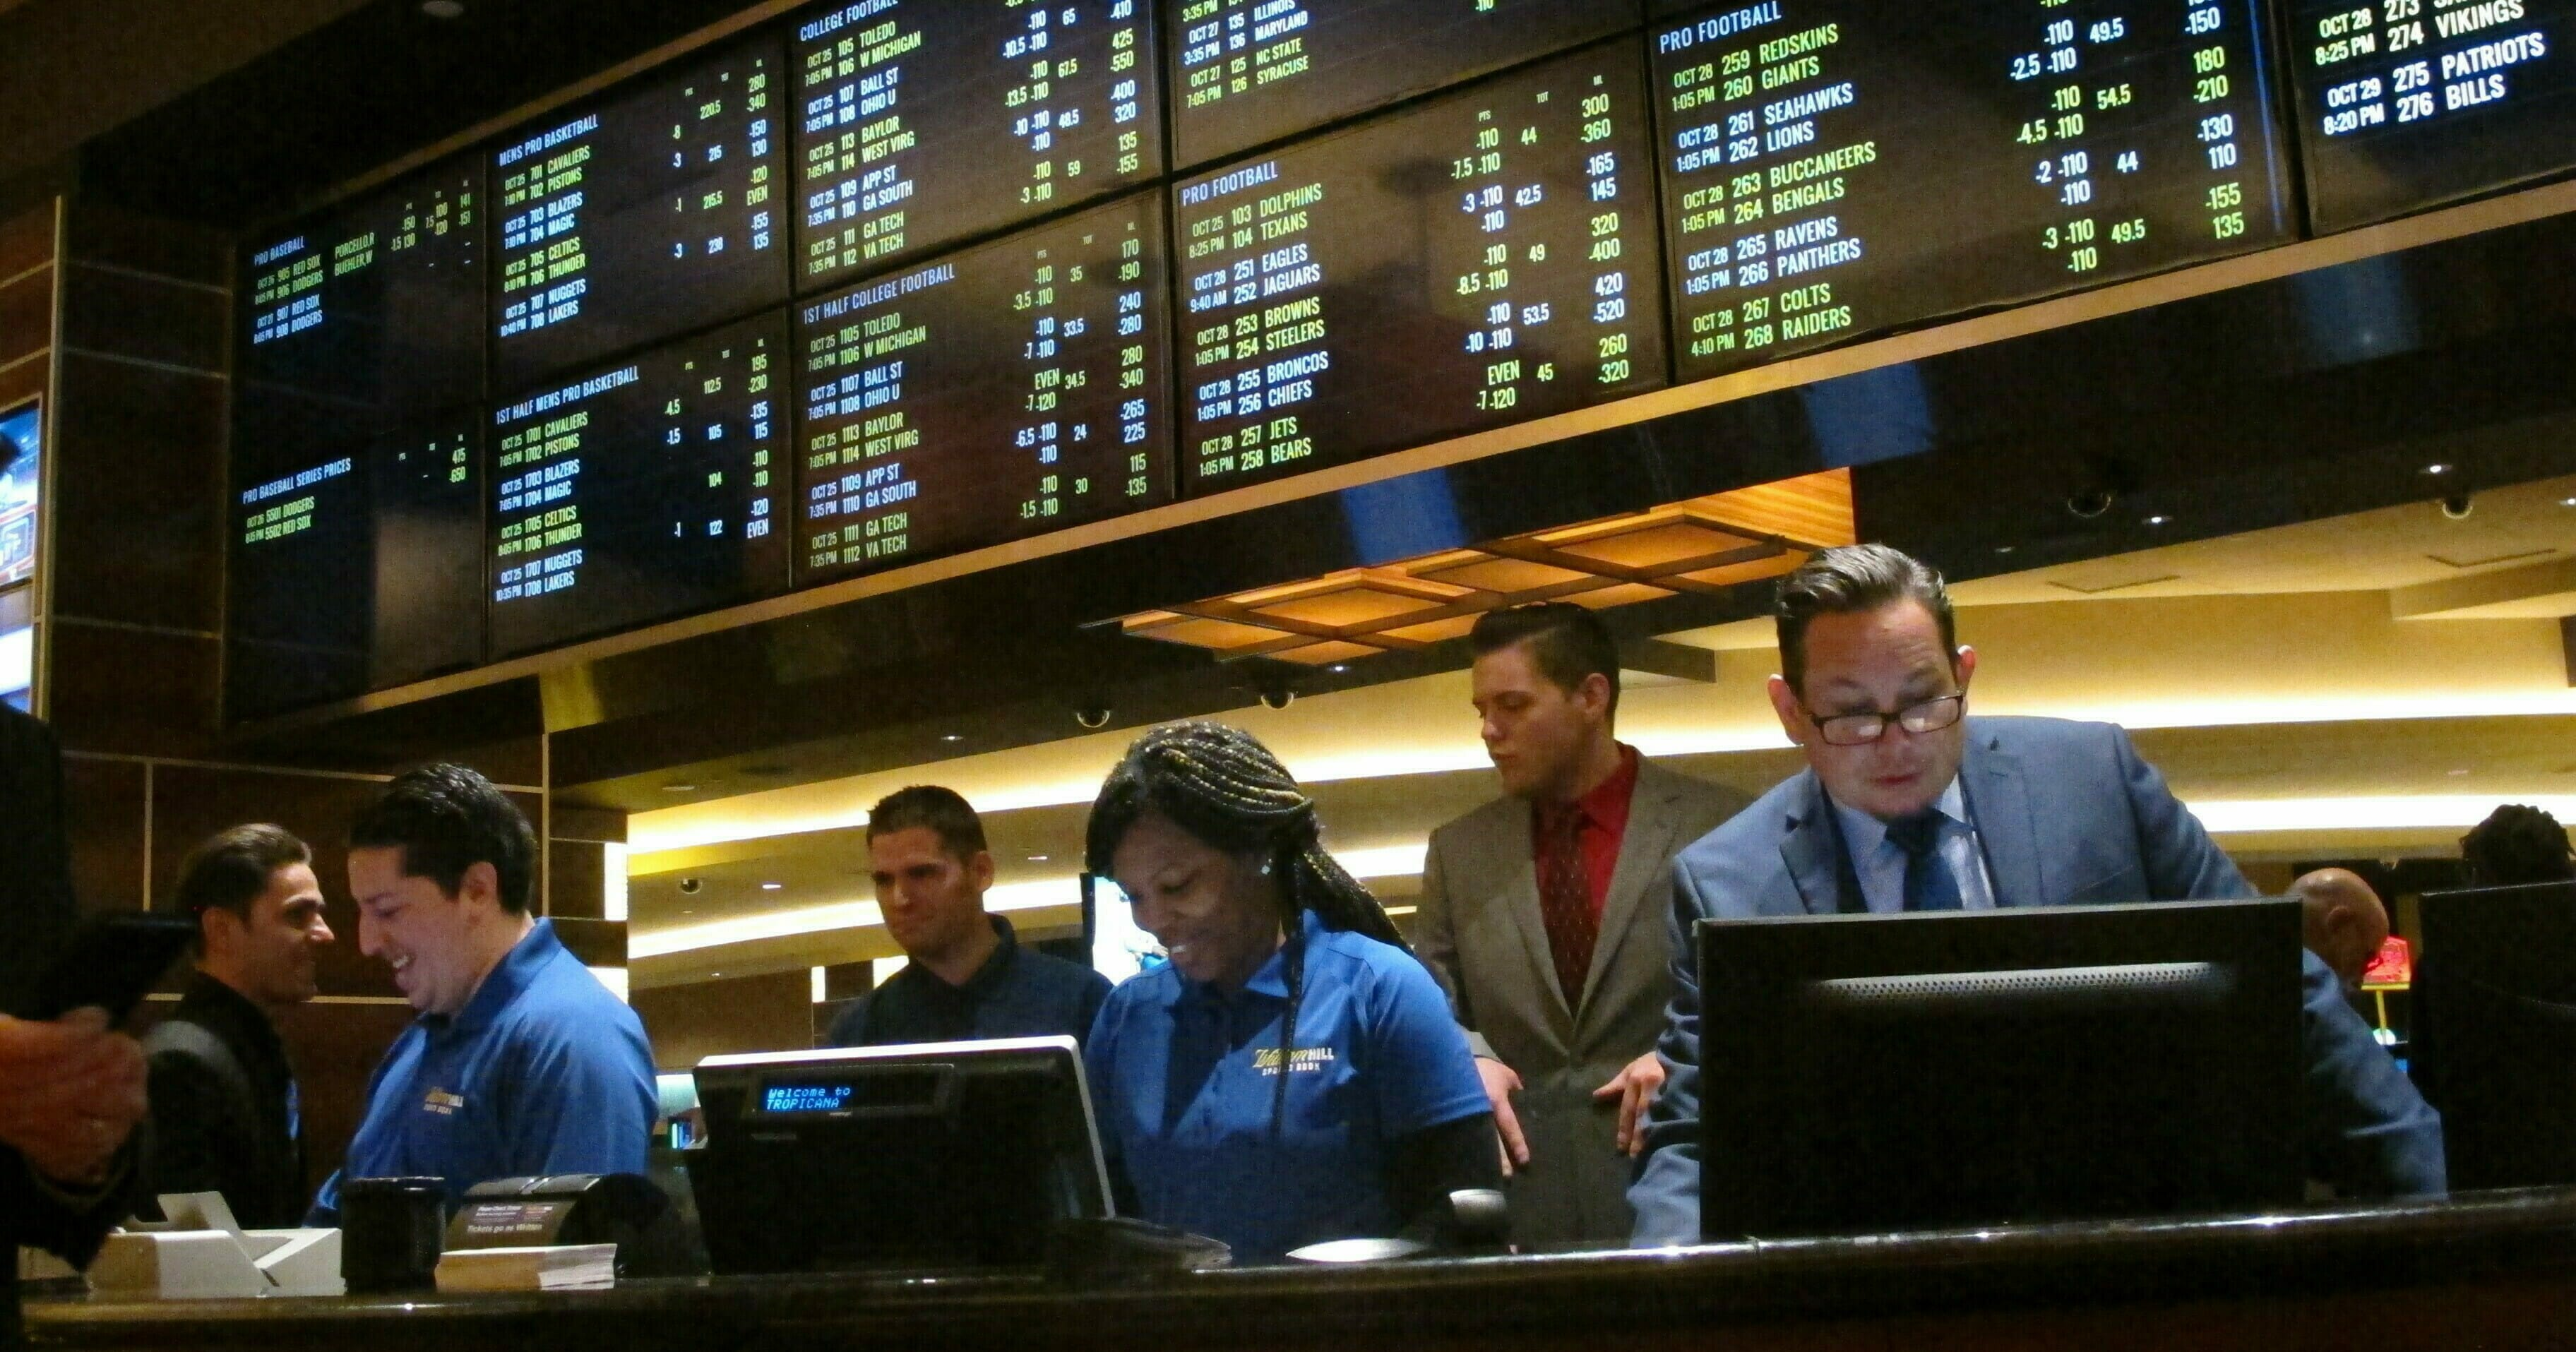 In this Oct. 25, 2018, file photo, employees prepare to take bets moments before the new sports book at the Tropicana casino in Atlantic City, N.J., opened.